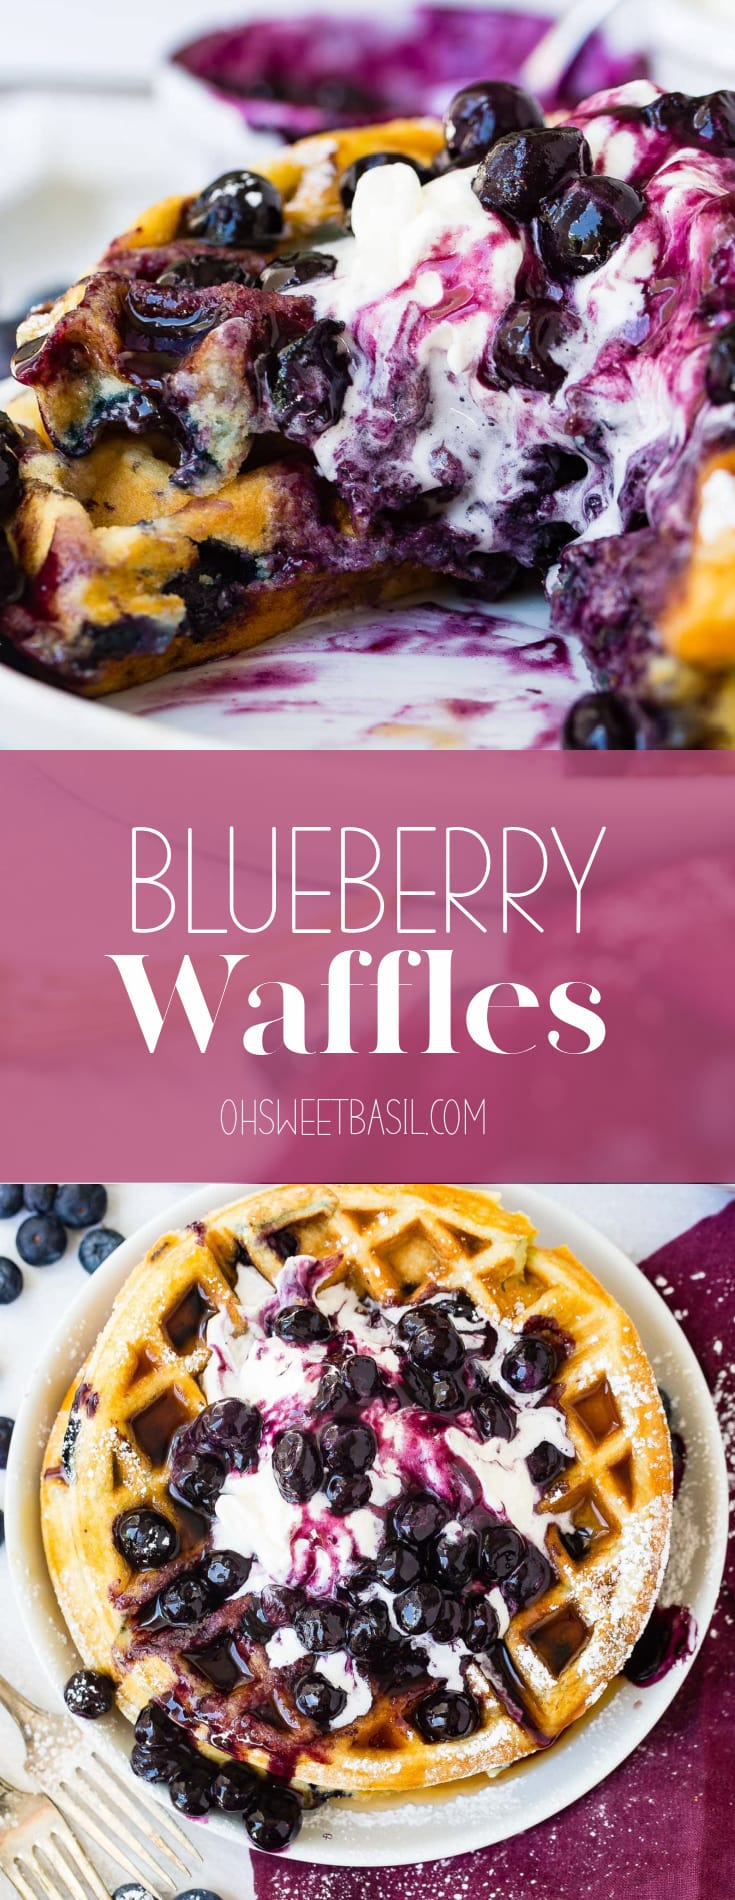 A top view of a blueberry waffle. There are blueberries and whipped cream on top. Fresh blueberries, a bowl of mashed blueberries with a spoon, and a bowl of whipped cream are in the background. The plate is sitting on a wine colored napkin and there are two forks next to the plate.